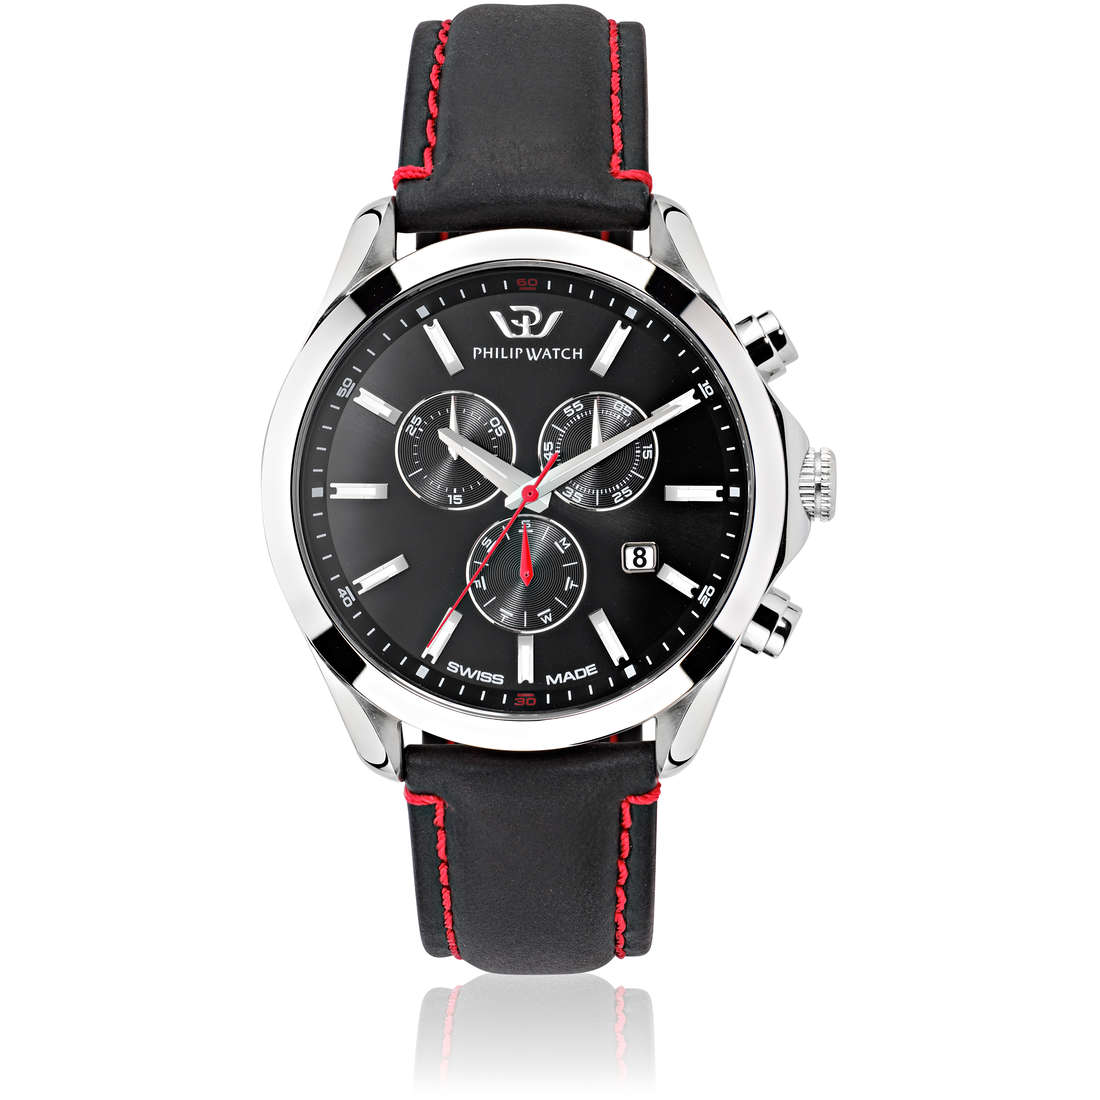 montre chronographe homme Philip Watch Blaze R8271665007